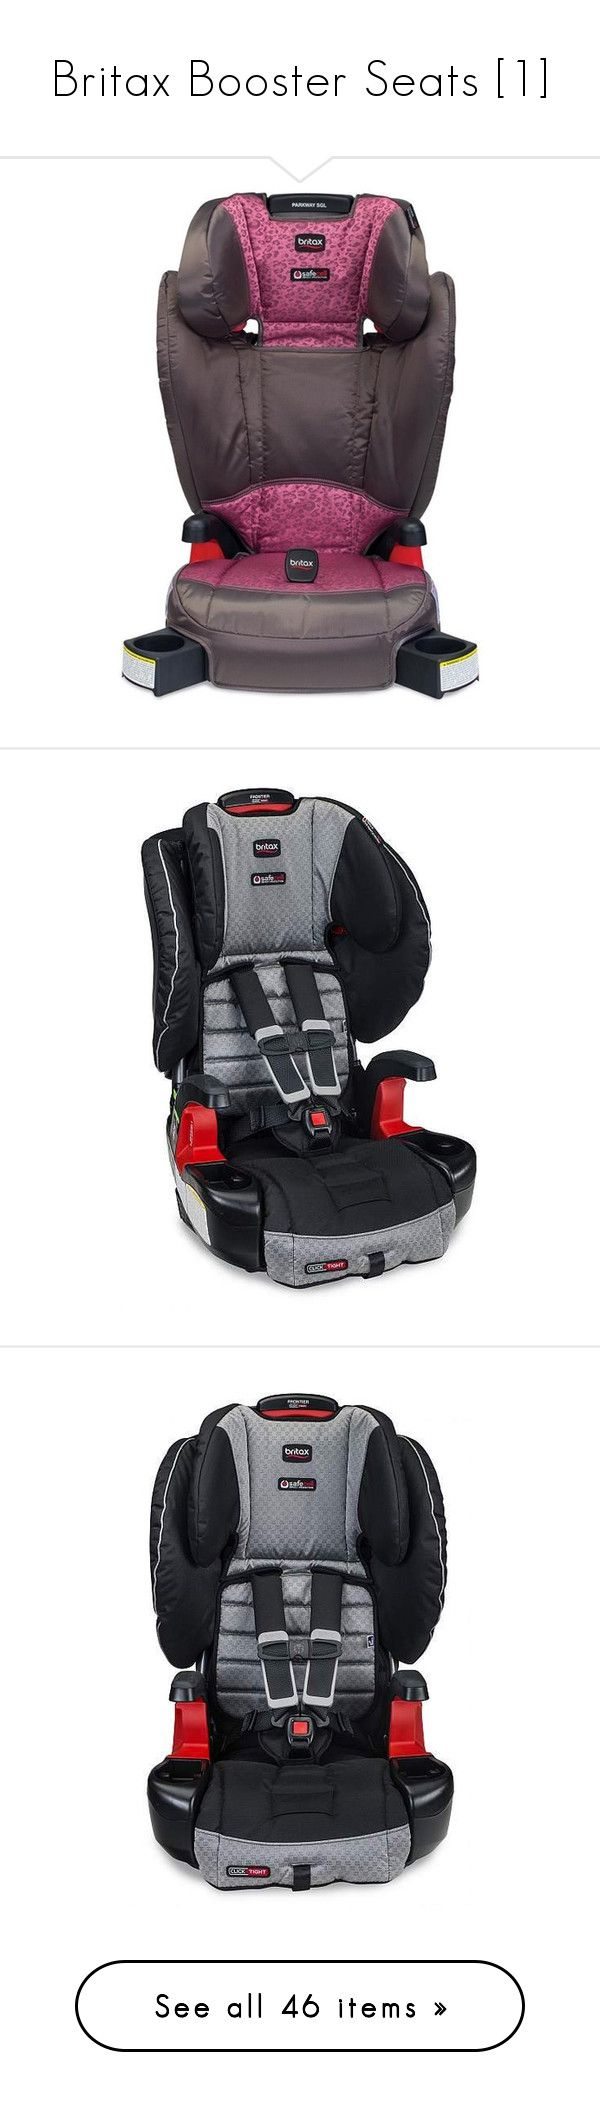 """""""Britax Booster Seats [1]"""" by buildyourown ❤ liked on Polyvore featuring car seat, baby, baby stuff, kids, babie, kaleidoscope and green"""